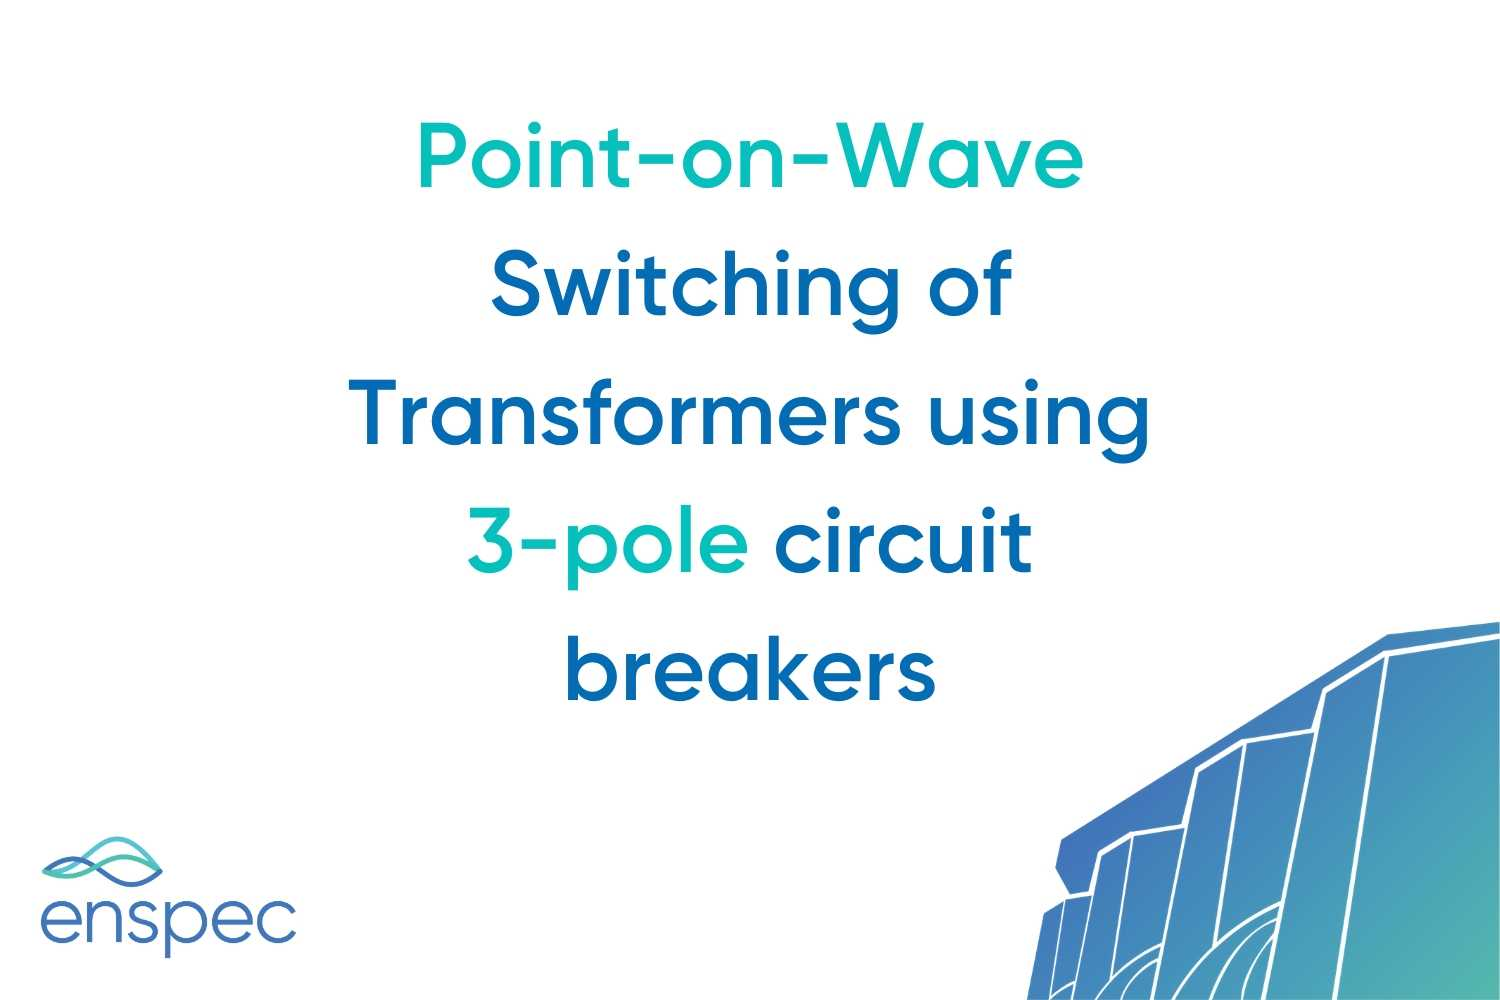 Transformer Point-on-Wave